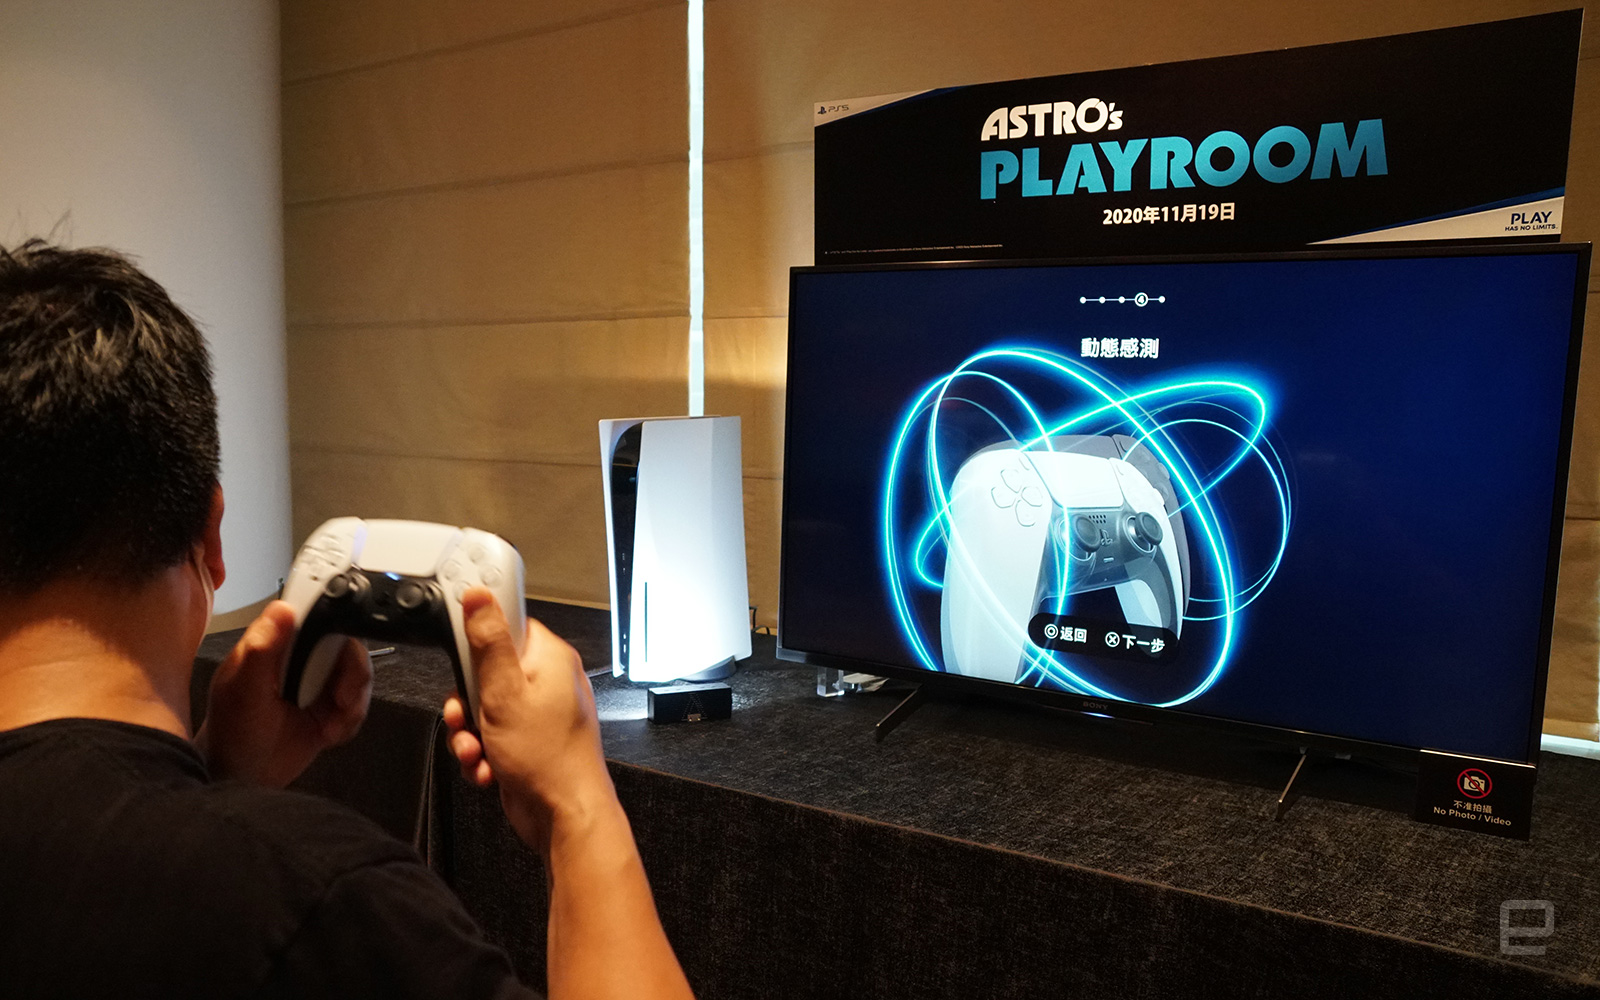 Astro's Playroom on PlayStation 5.